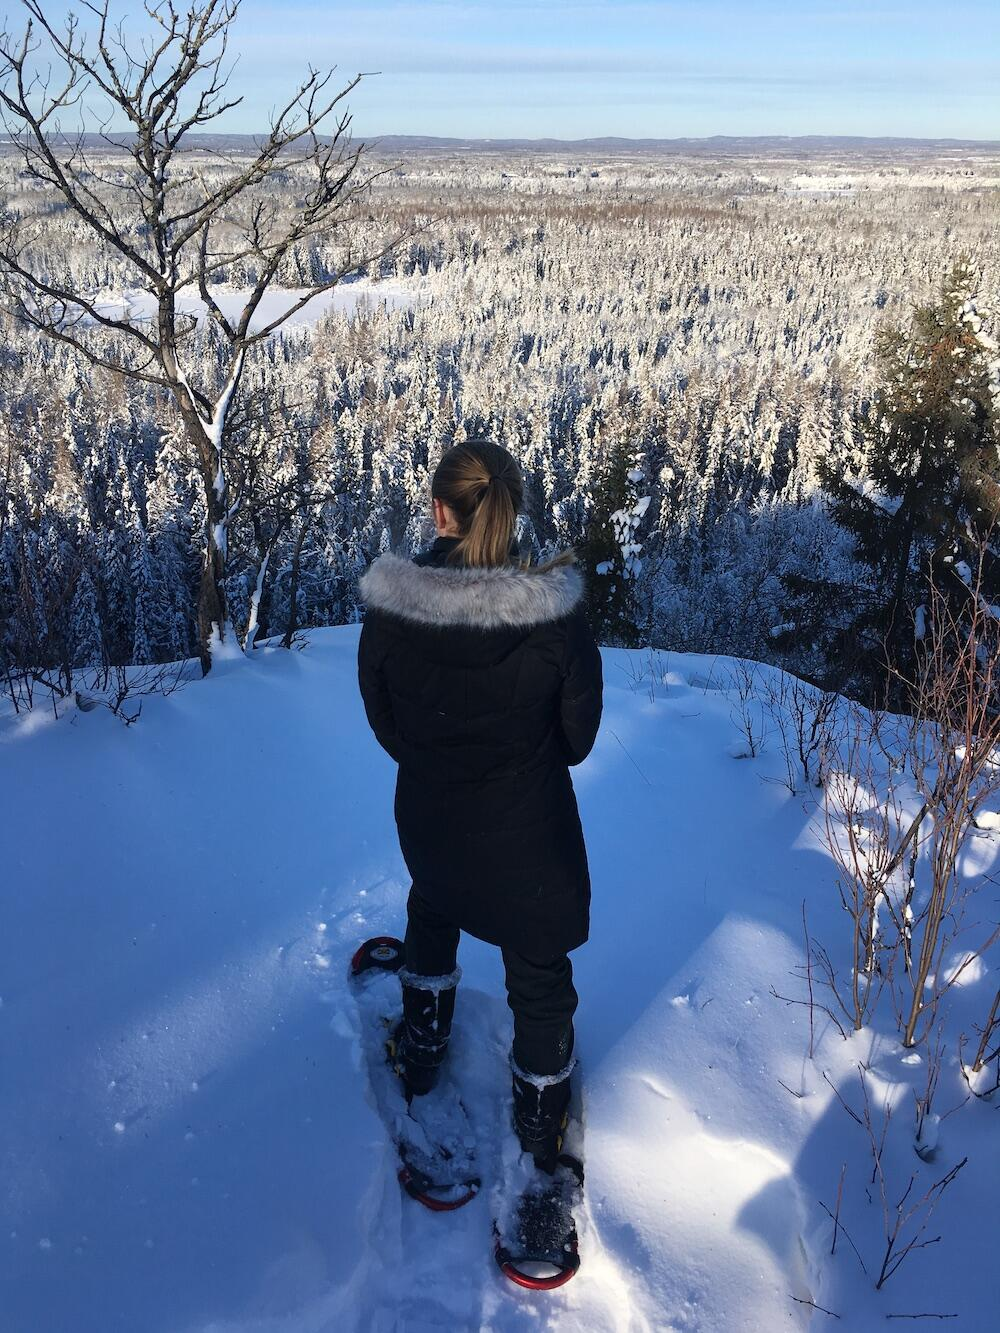 Woman on snowshoes at top of snowy lookout